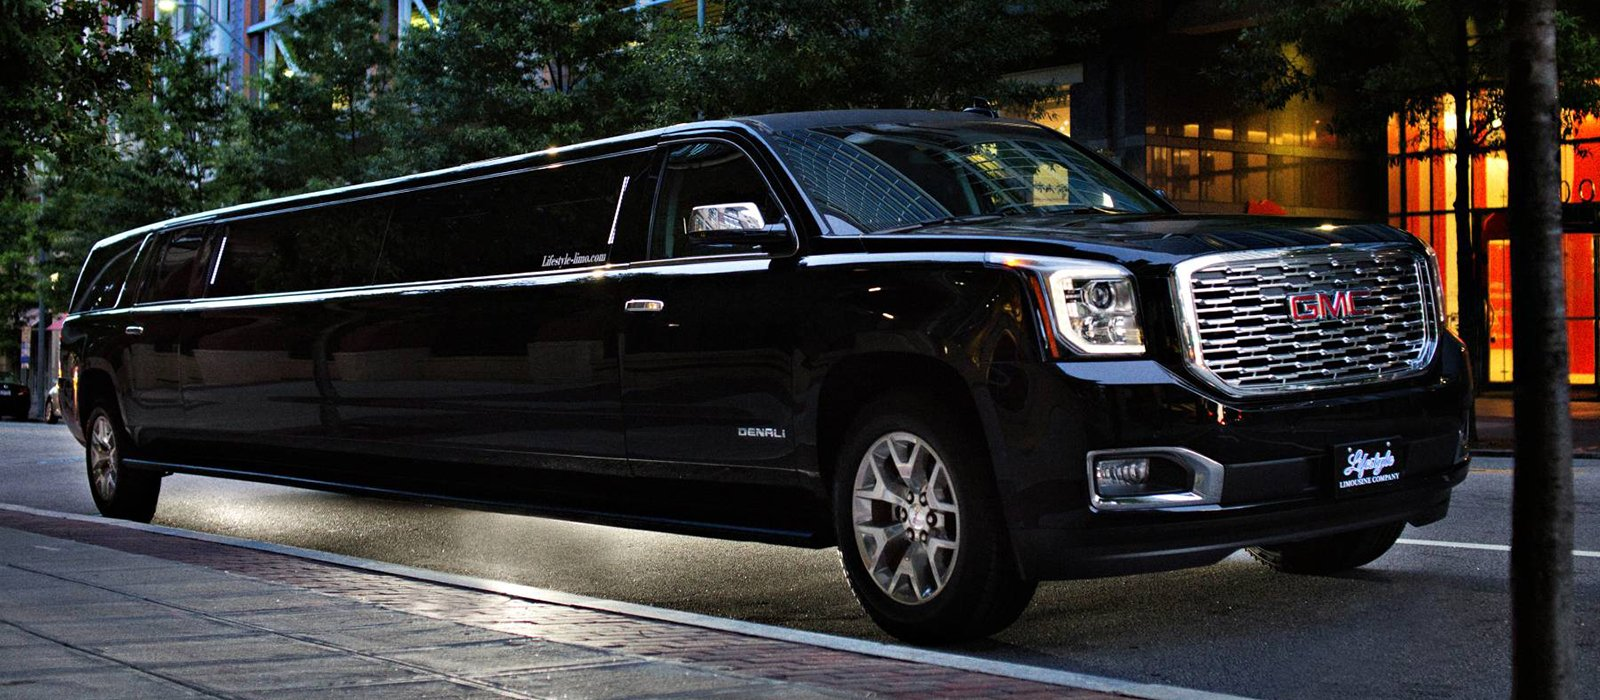 Get the best limo for you and stay stress-free!